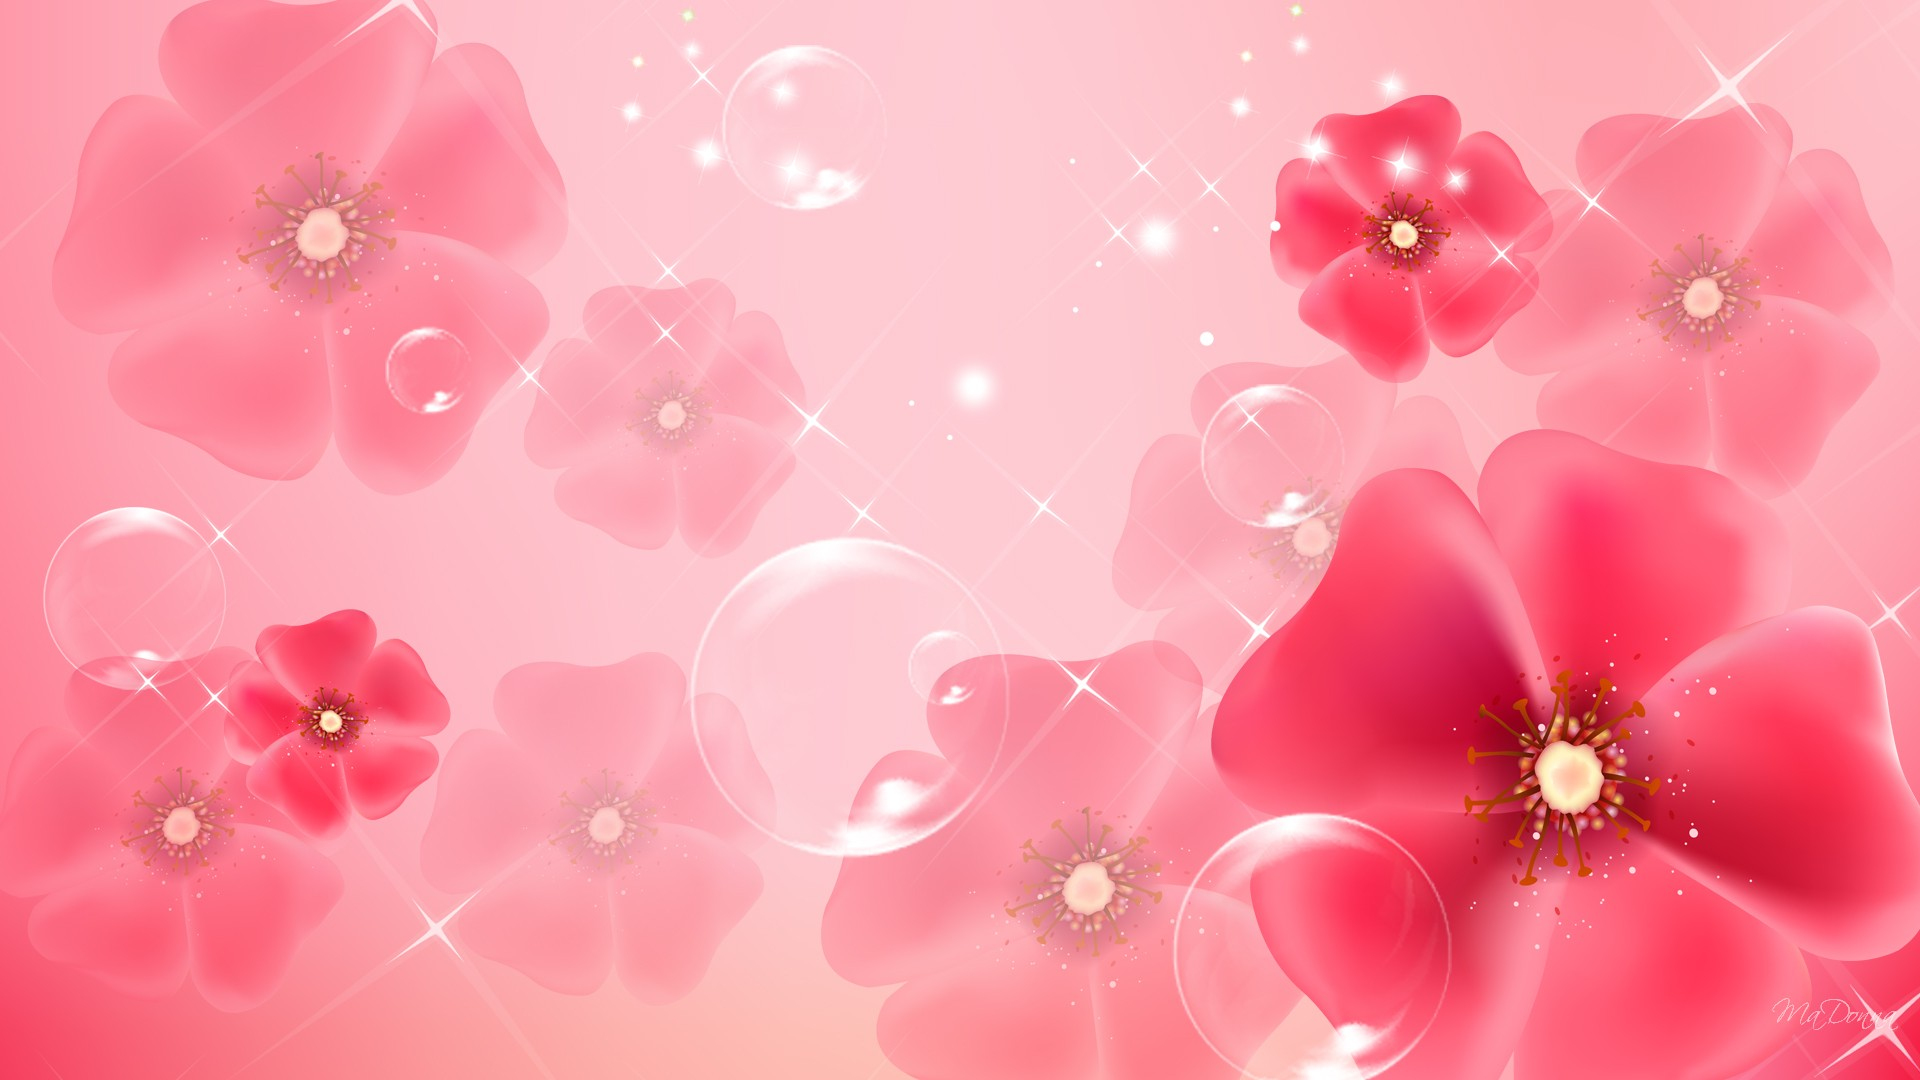 Light Pink Wallpapers   Desktop Backgrounds 1920x1080